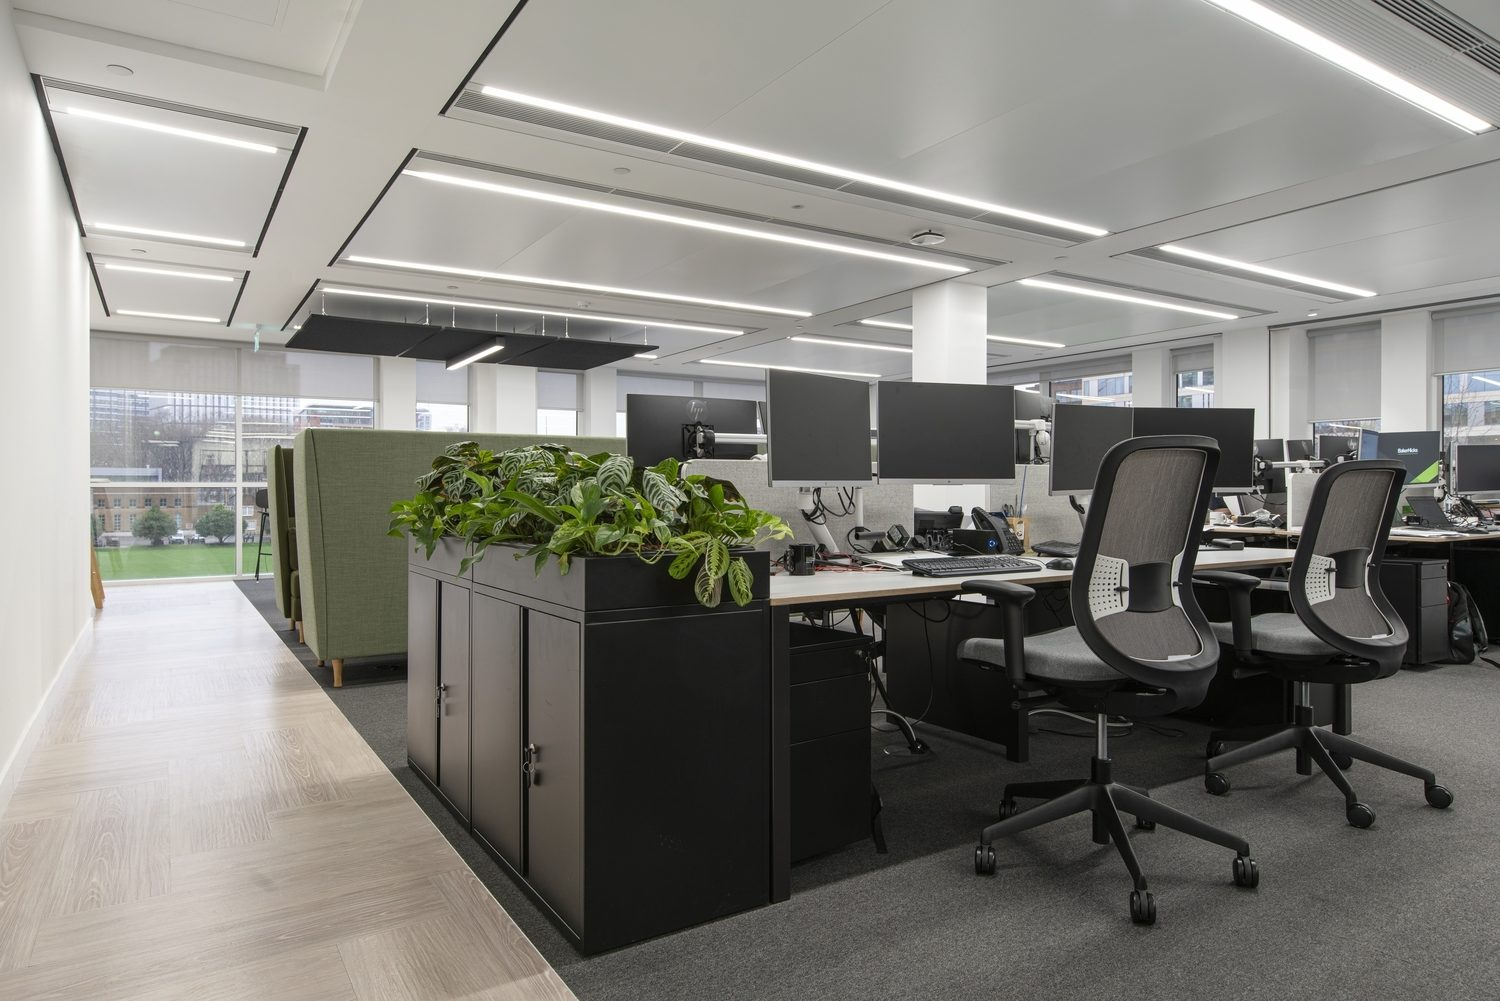 BakerHicks flexible workspace design